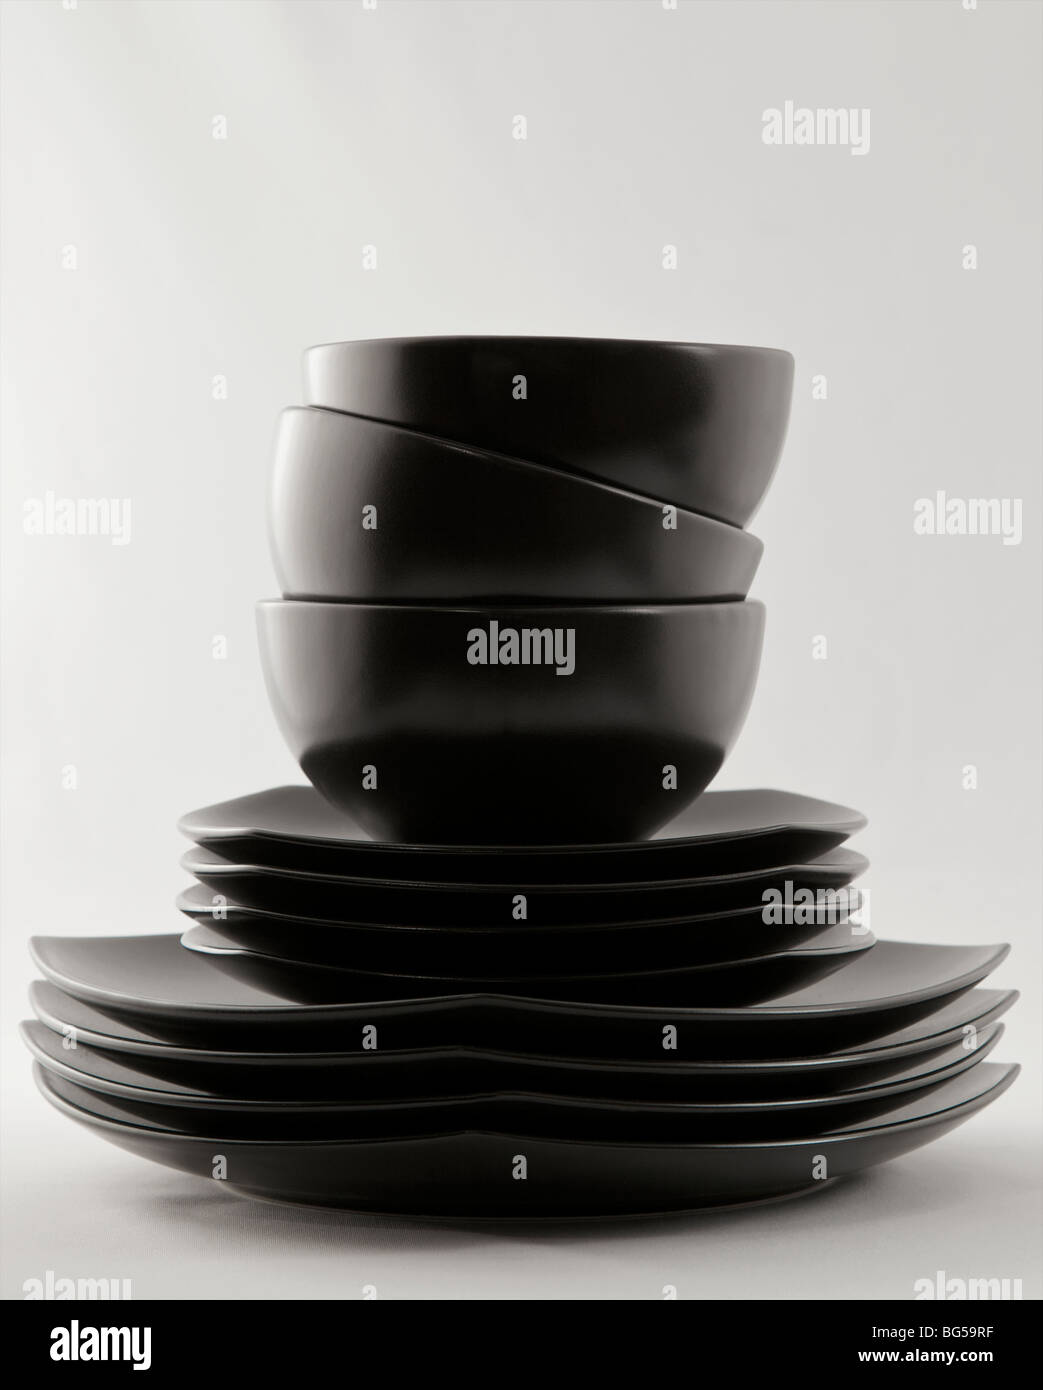 a stack of black dinner plates and bowls & a stack of black dinner plates and bowls Stock Photo: 27162339 - Alamy